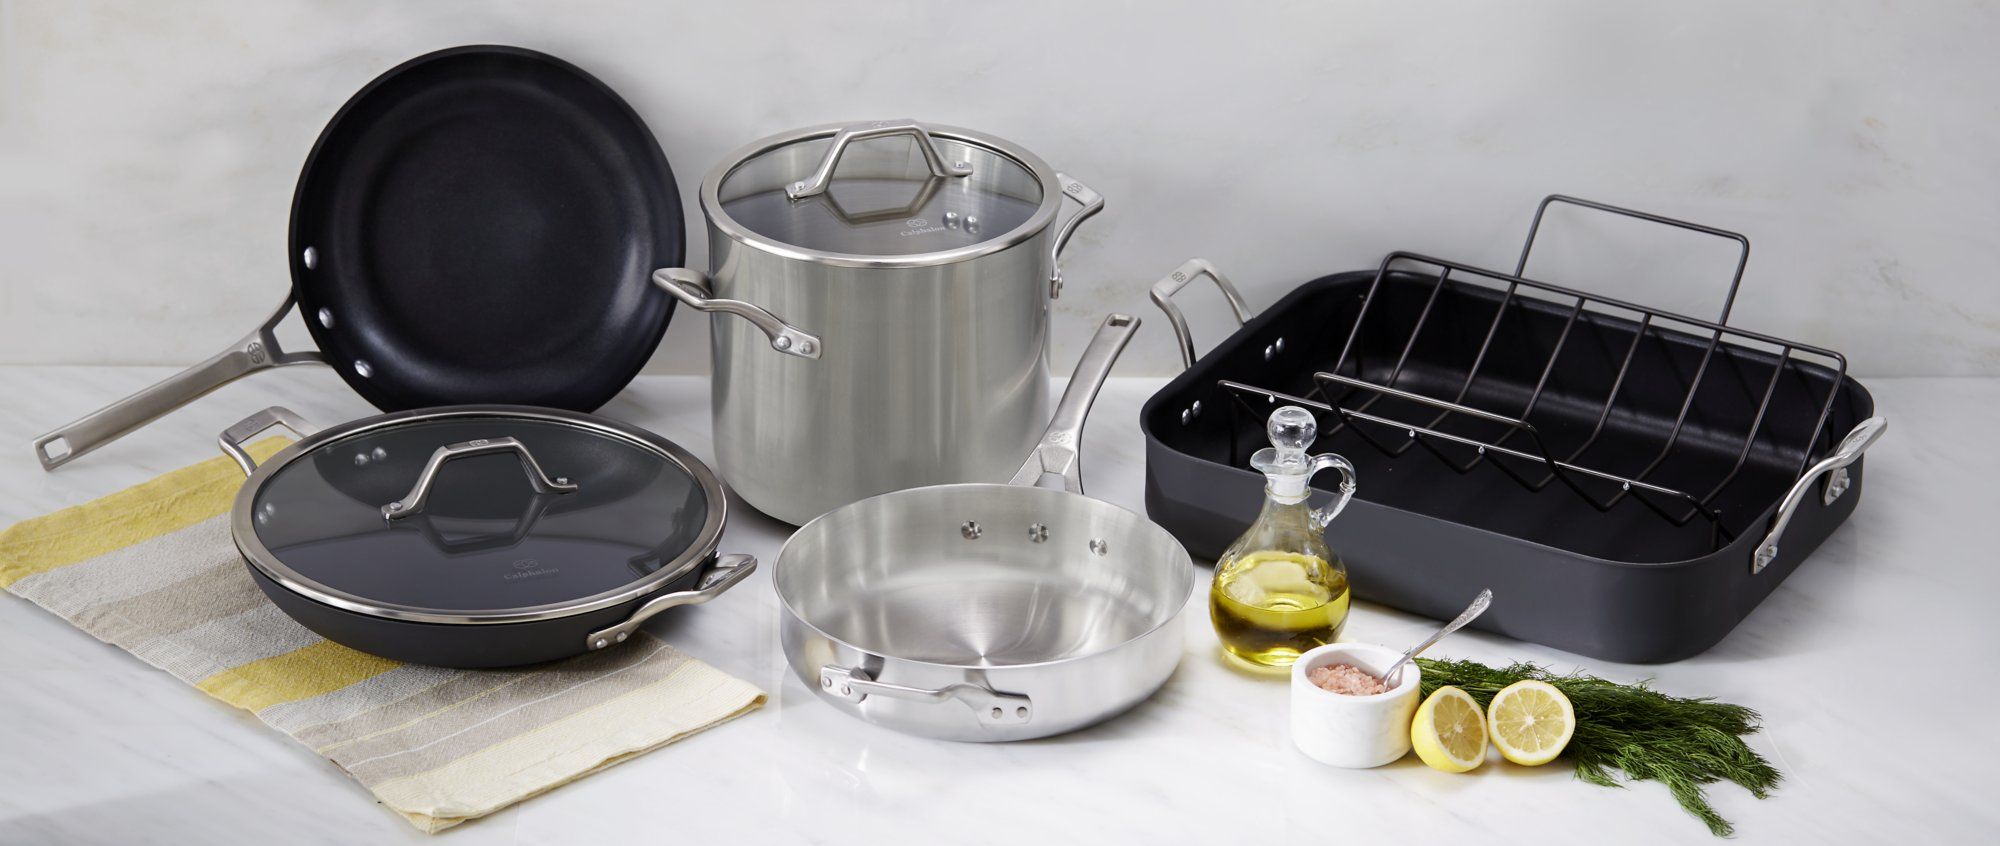 Calphalon Signature Nonstick 12 In Omelette Pan With Cover